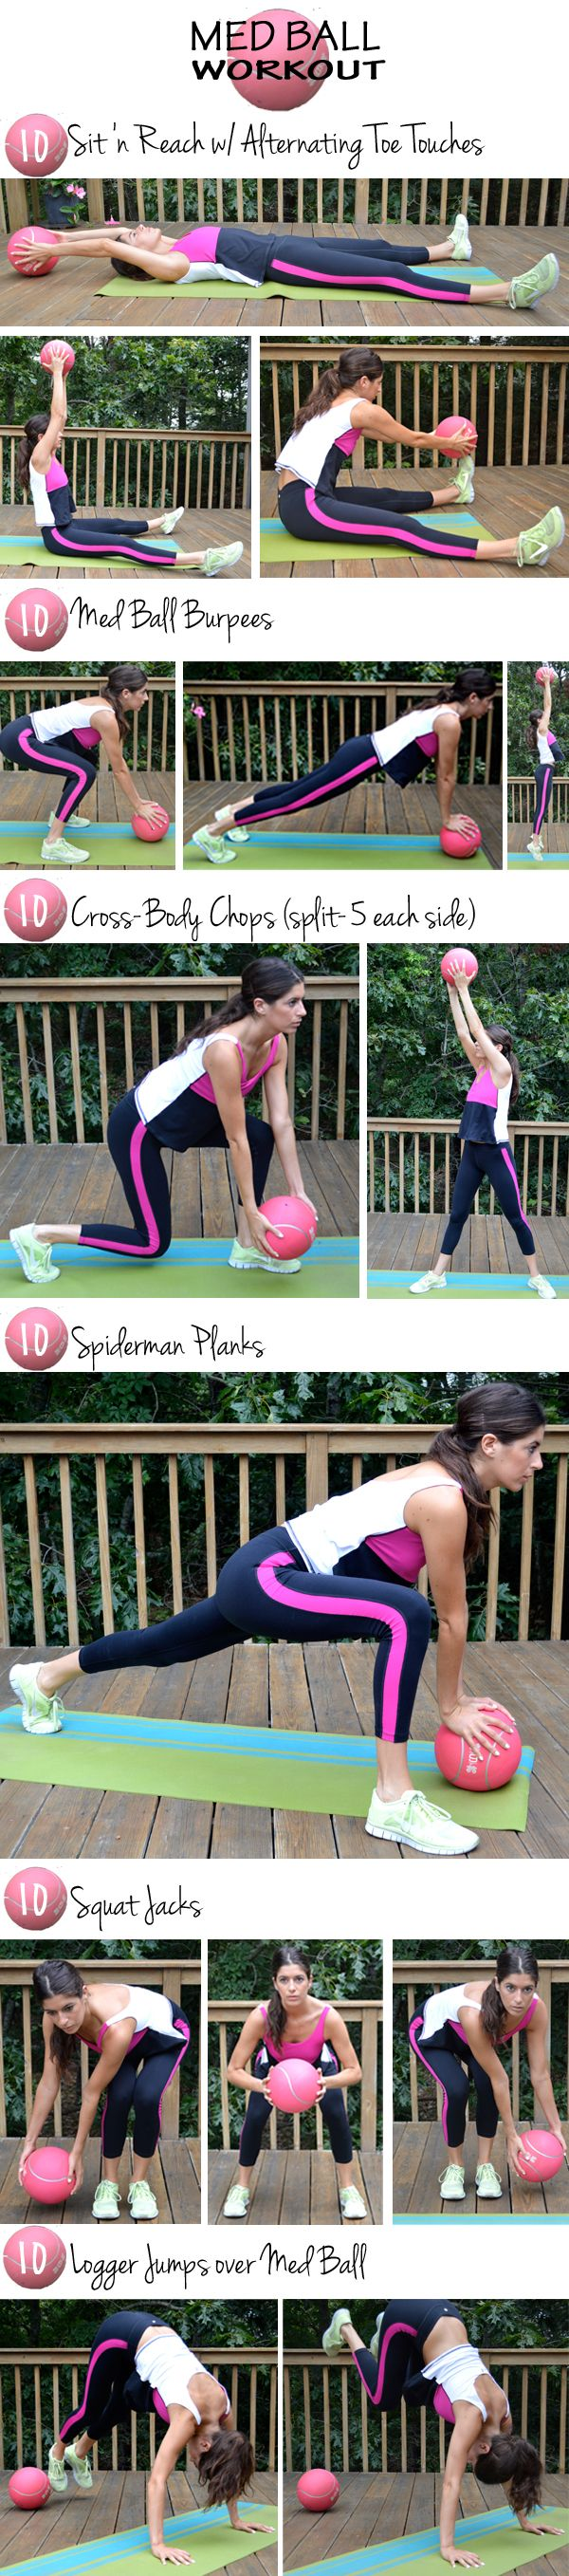 Hanging knee raises with medicine ball - 10 S Med Ball Workout